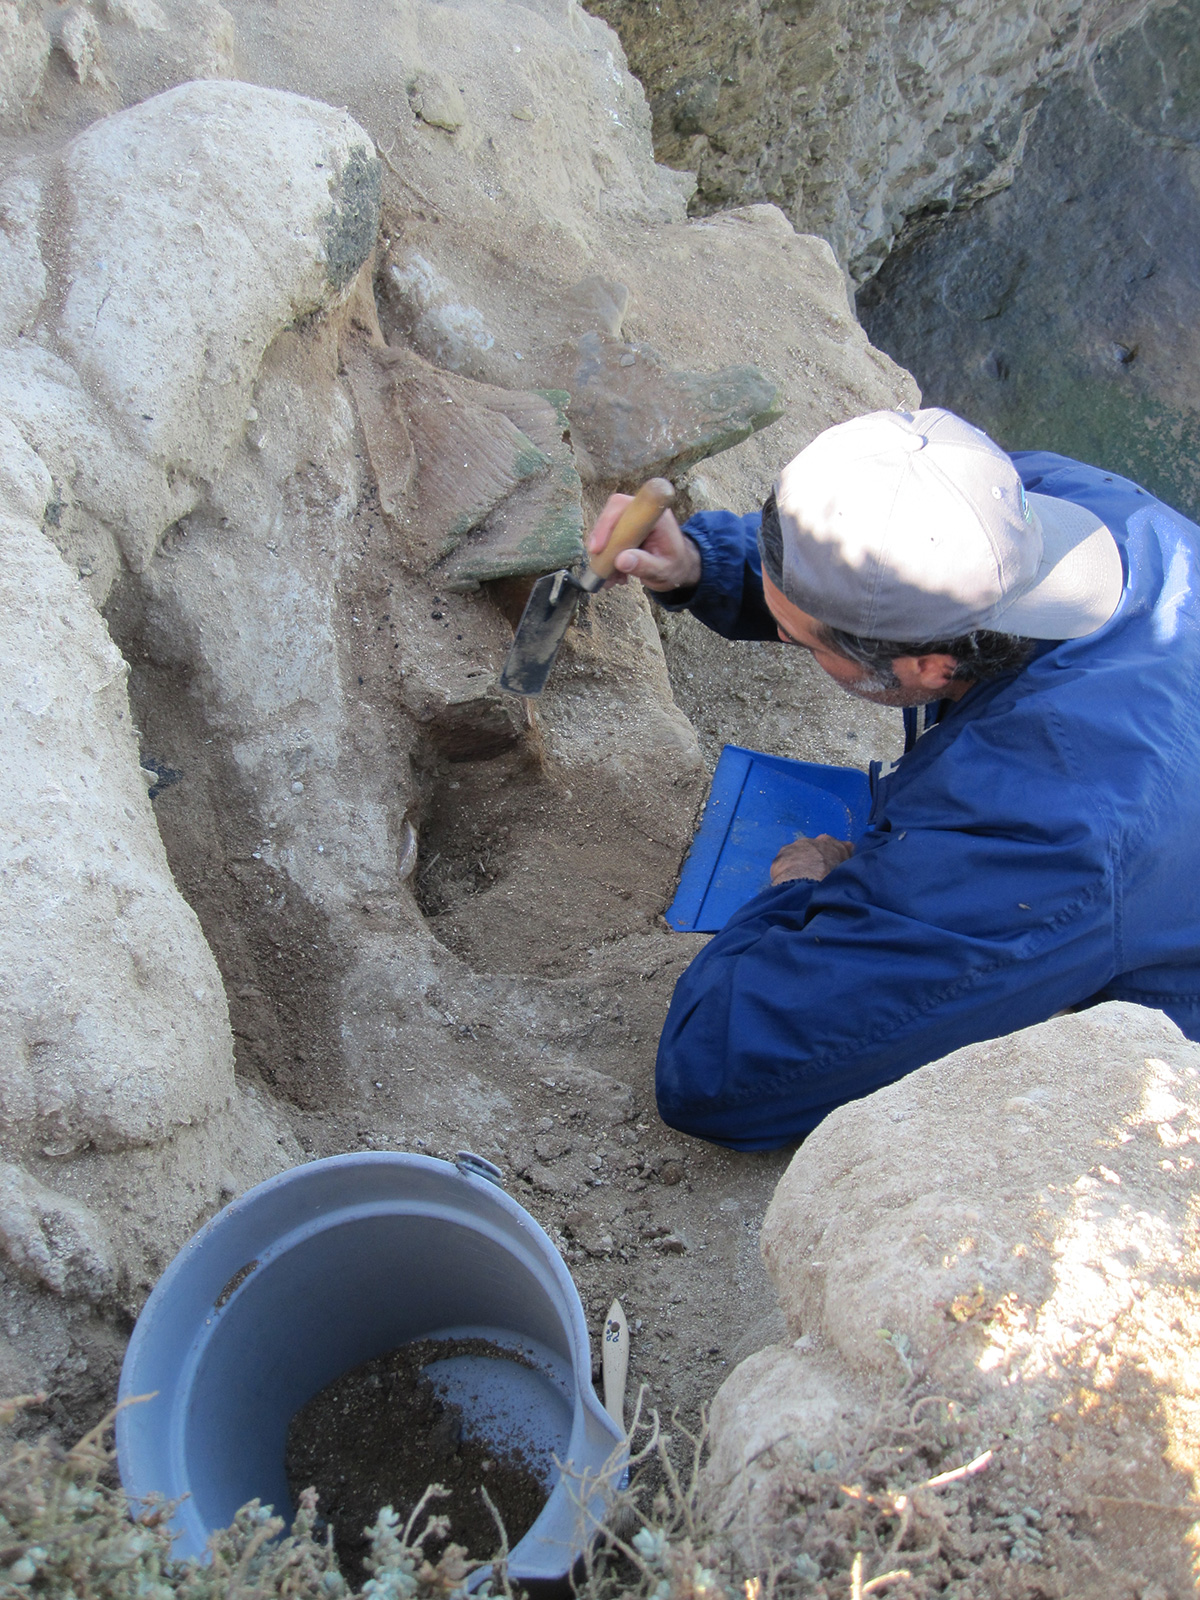 Professor Rene Vellanoweth assisted in the discovery and excavation of materials believed to have belonged to the Lone Woman